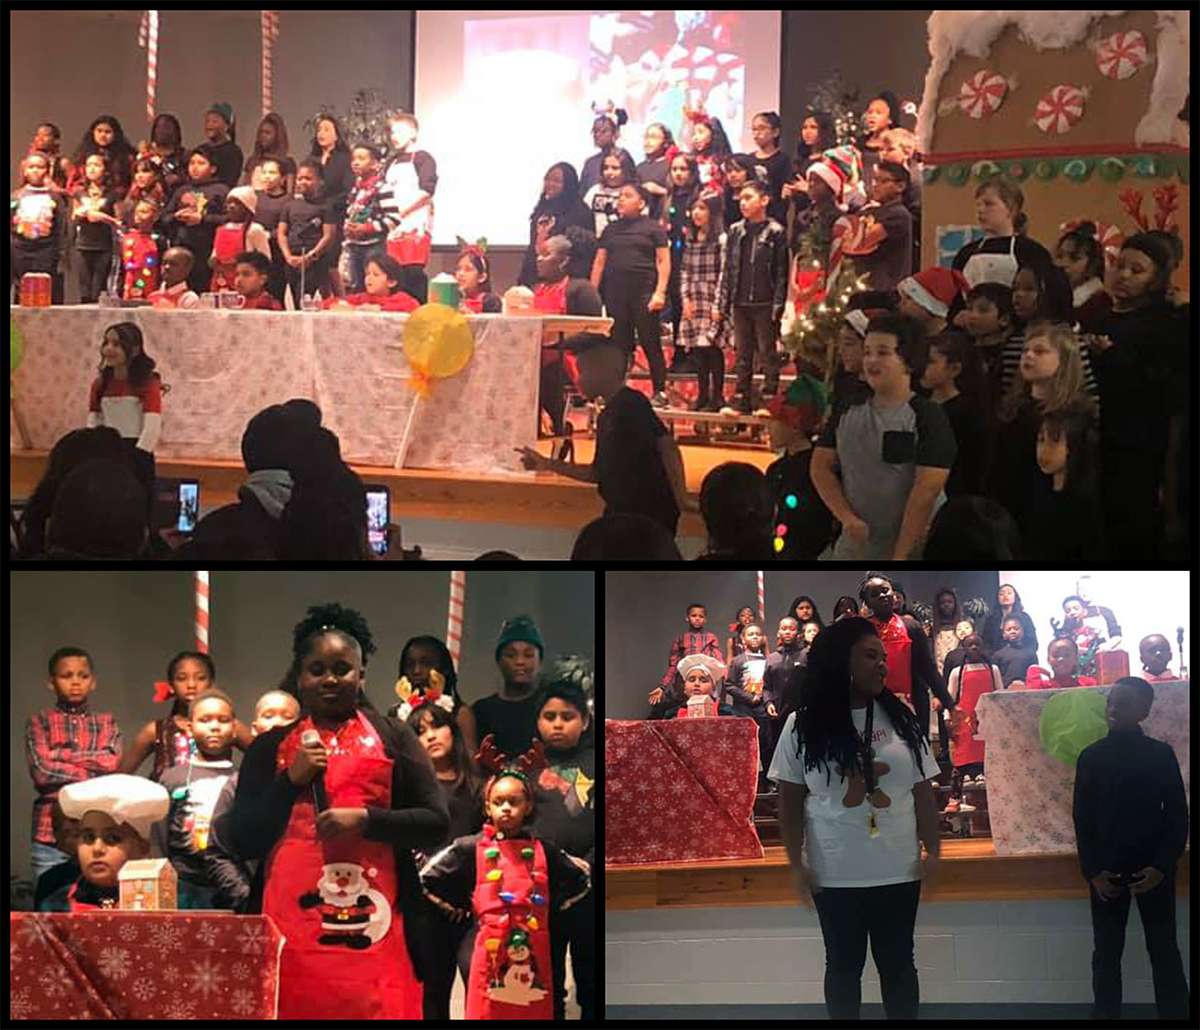 Our holiday program was a great success! Students did an amazing job singing and performing and the building was filled with cheer. Photos submitted